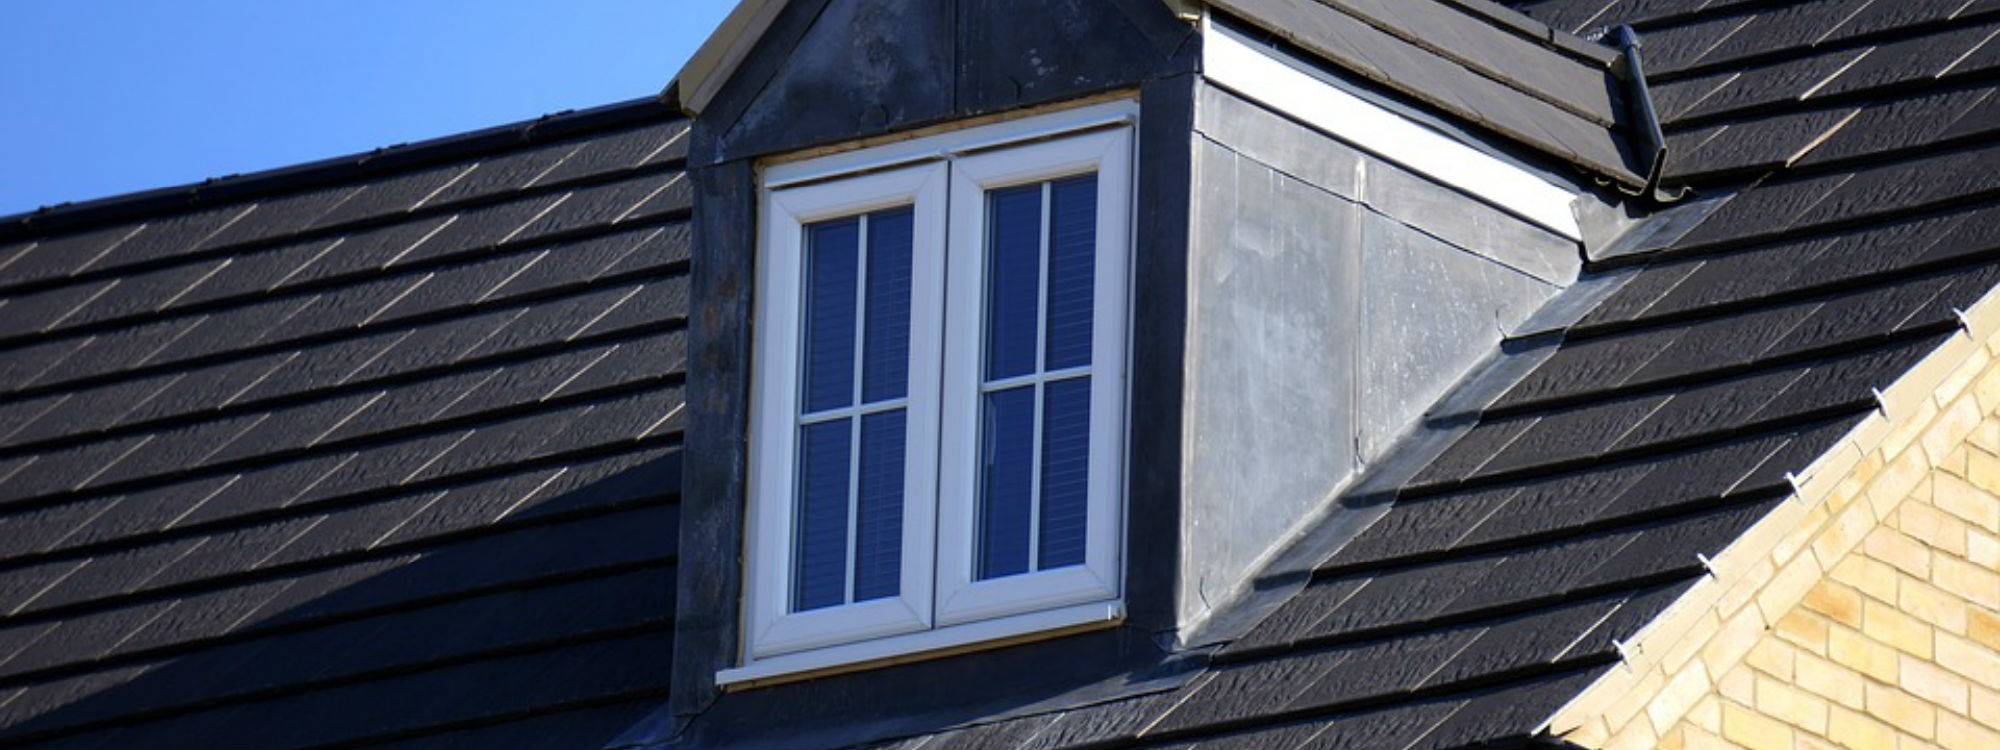 Velux Roof Windows and Flat Roof Windows - DMR Roofing ...